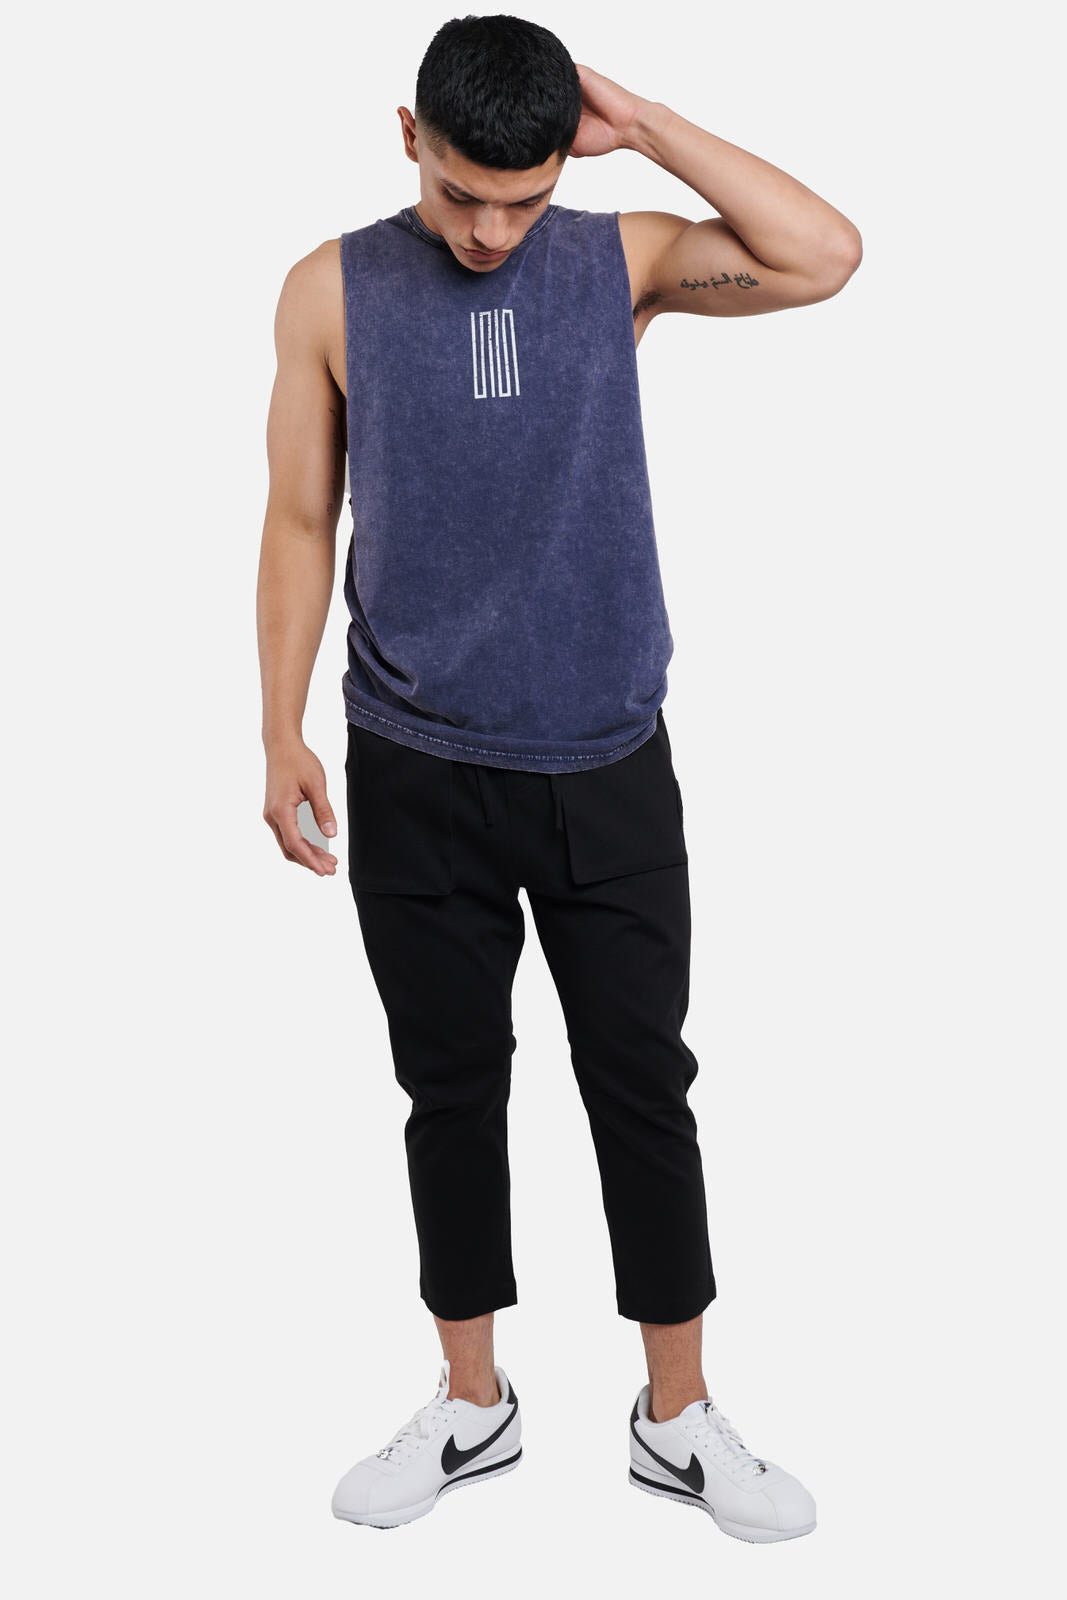 knox article 1 cut off logo tee - scrt society